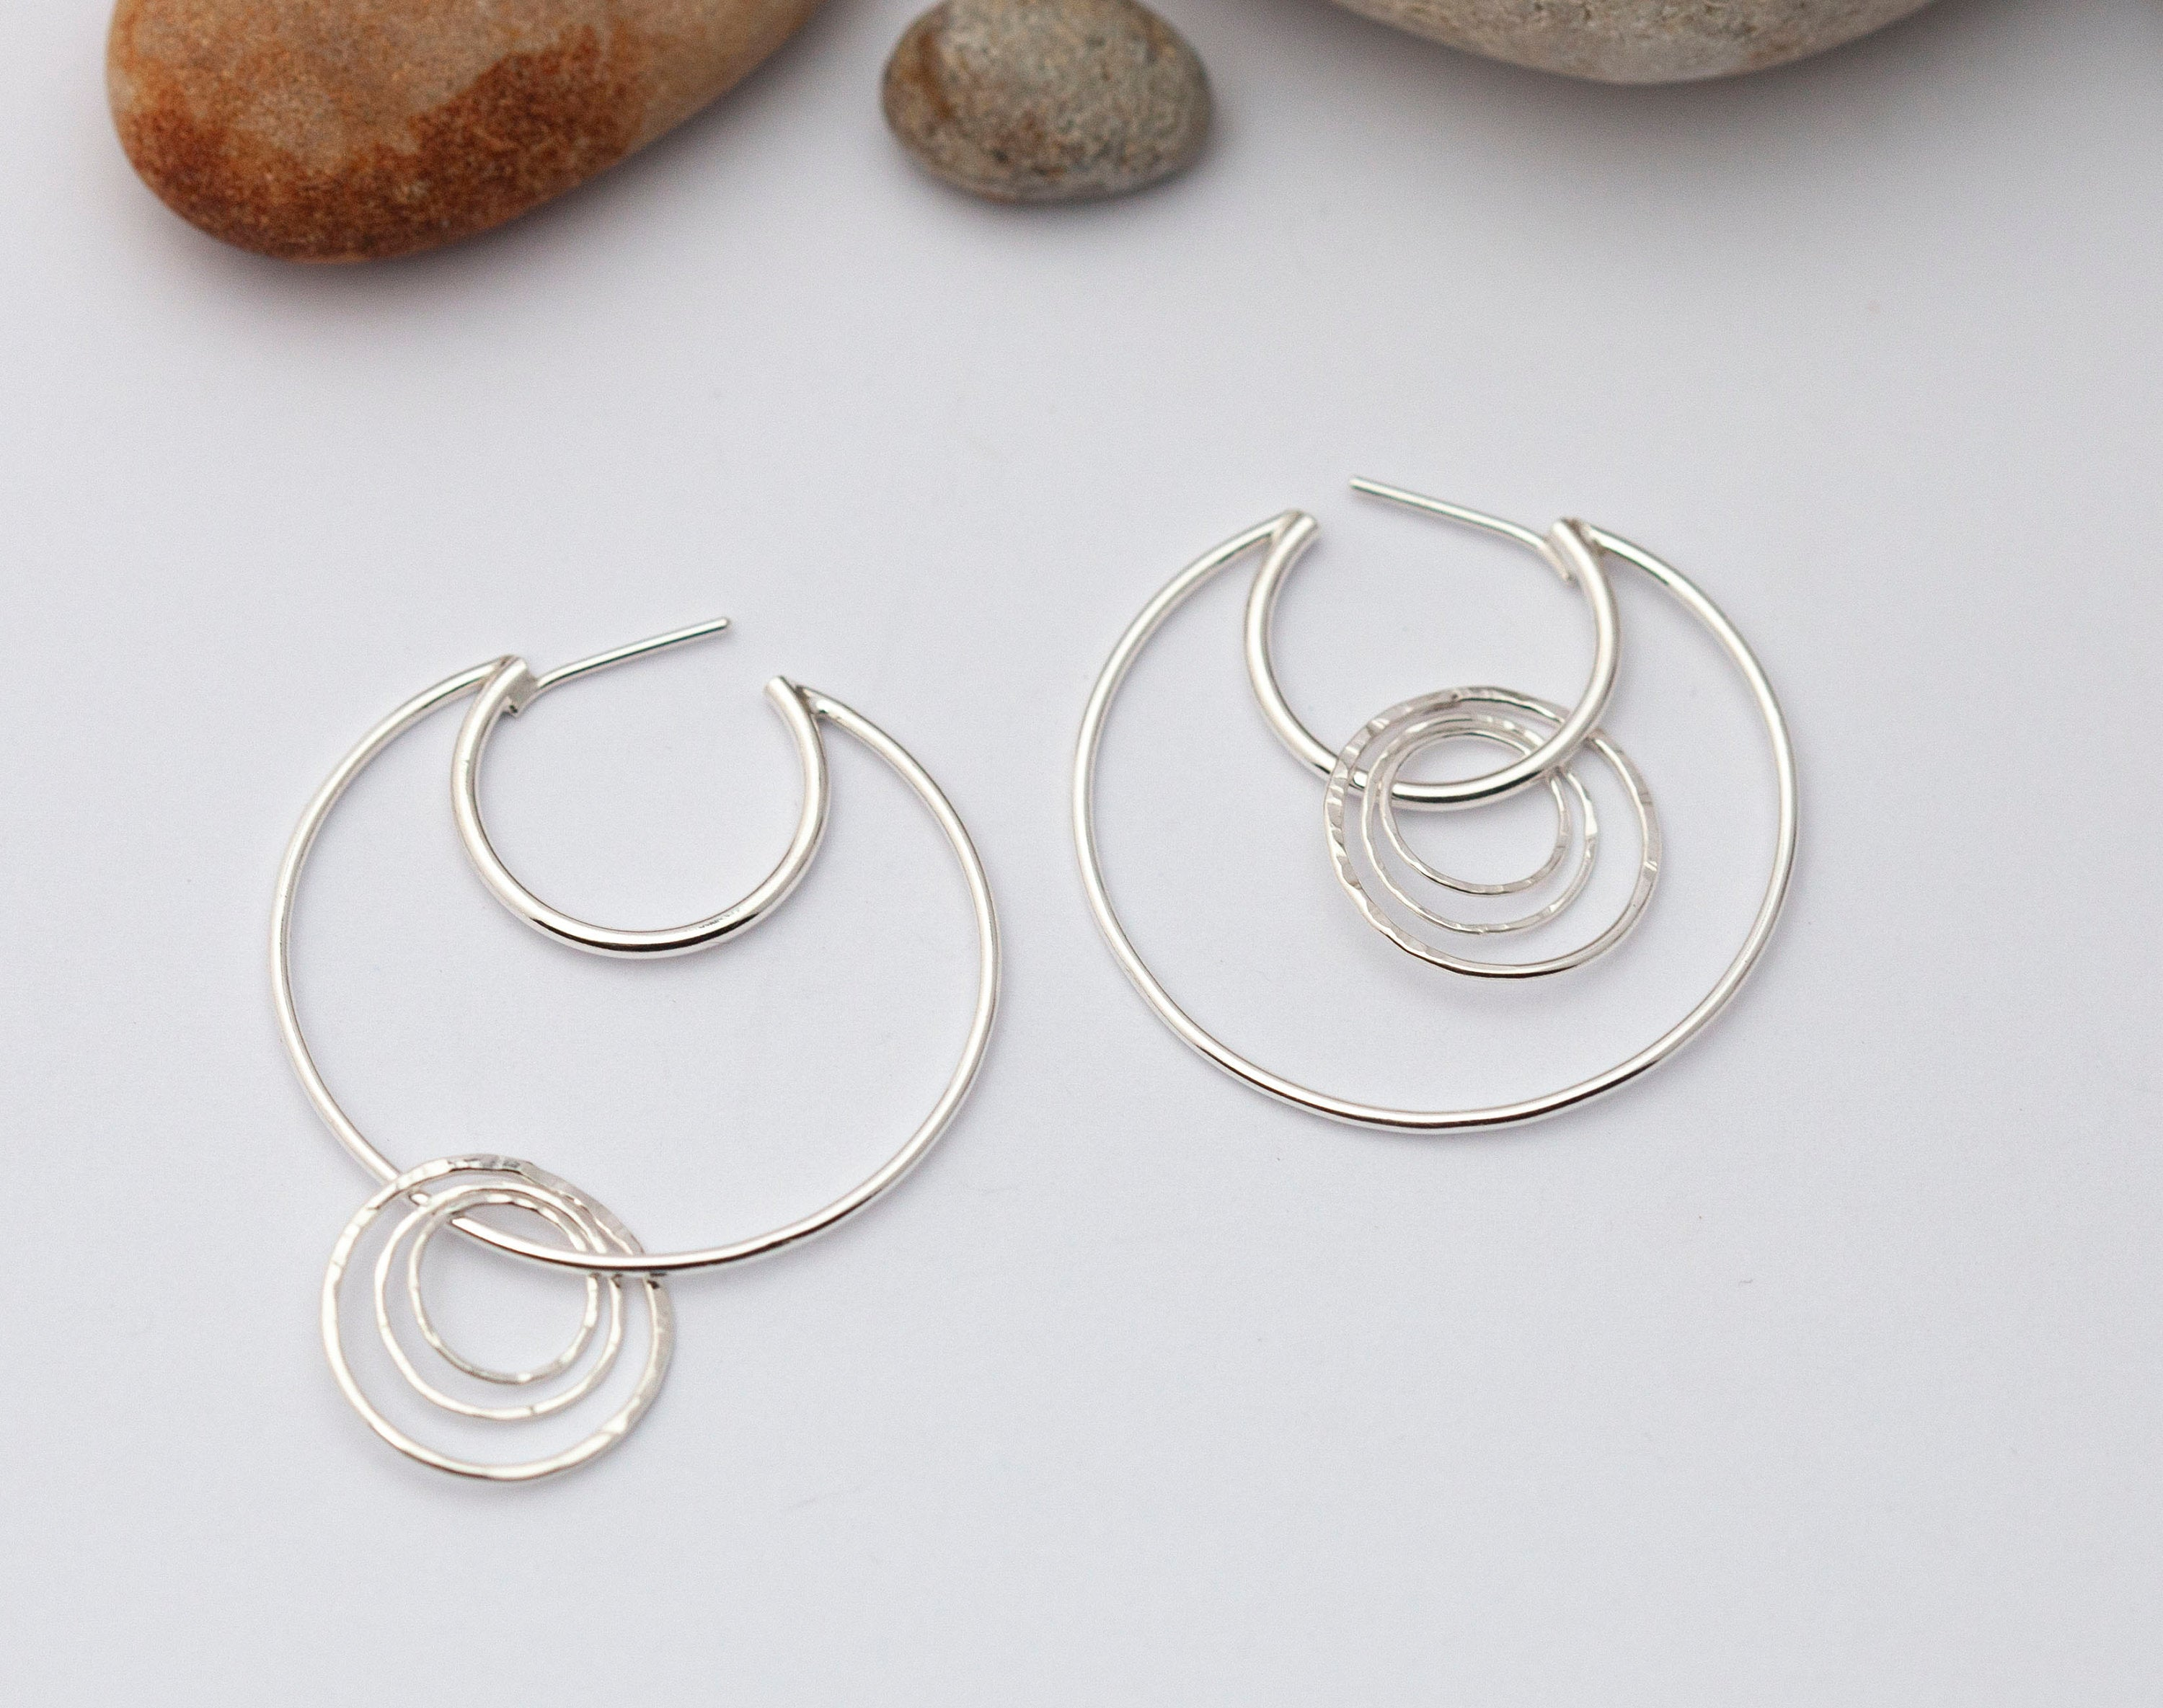 Crescent moon hoop earrings in silver ~ many rings with hammered texture